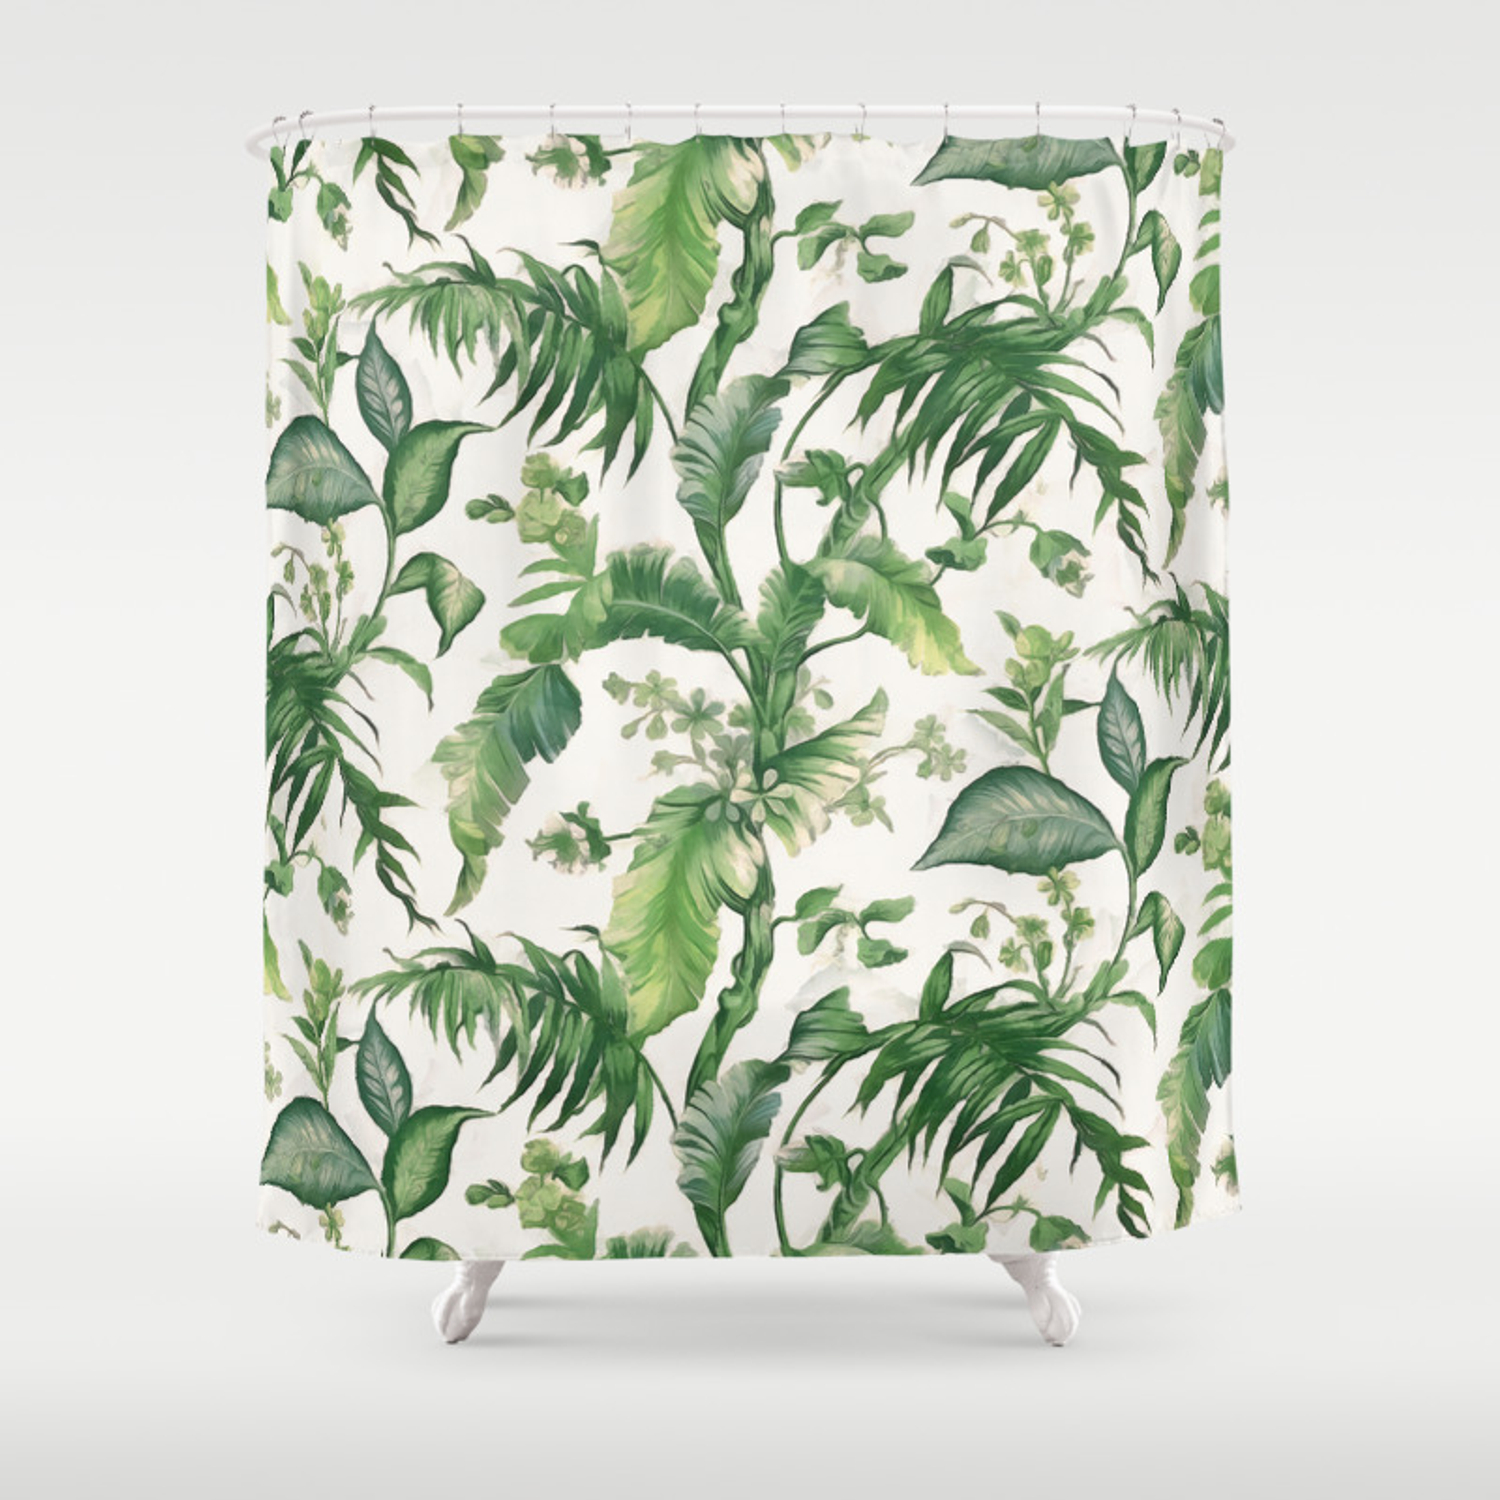 Green Tropical Leaves Shower Curtain By Catyarte Society6 Matching bath mat (image 2) and towel (image 3). society6